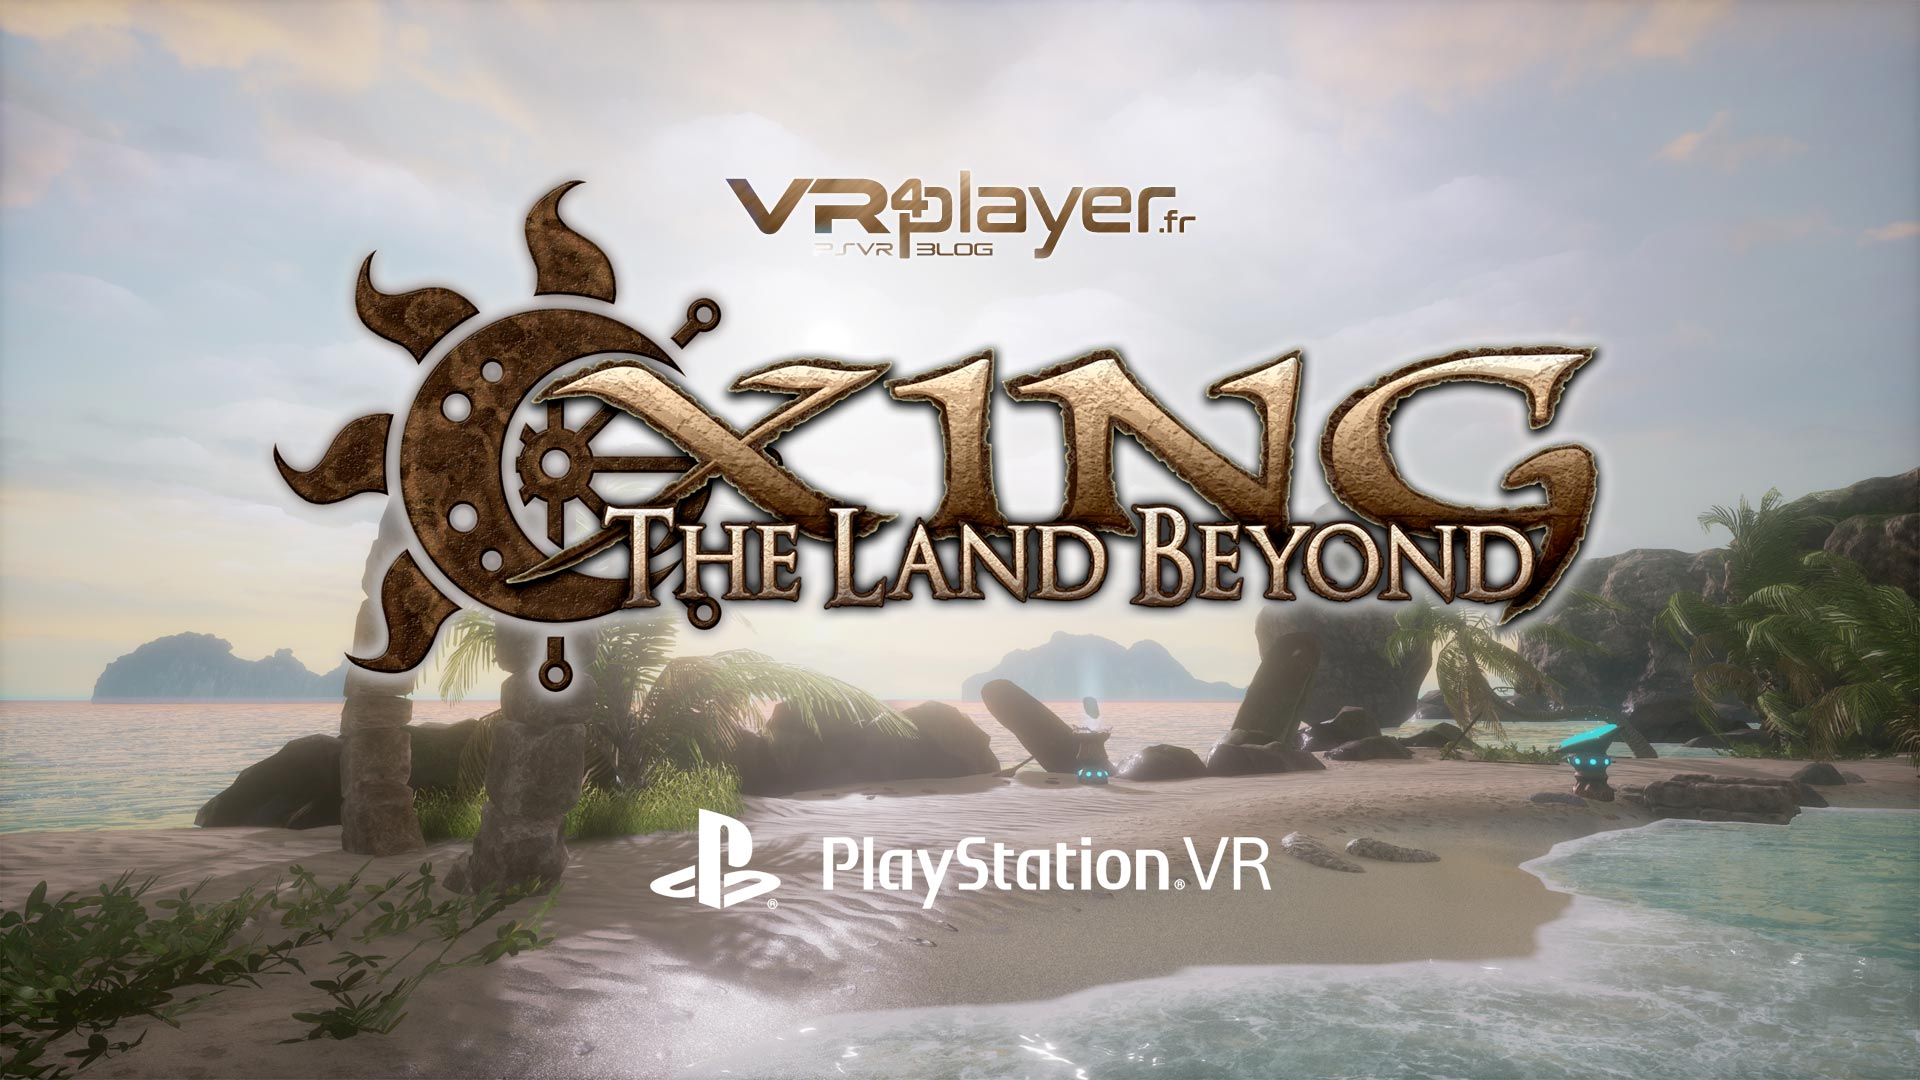 Xing The Land Beyond PlayStation VR PSVR VR4Player